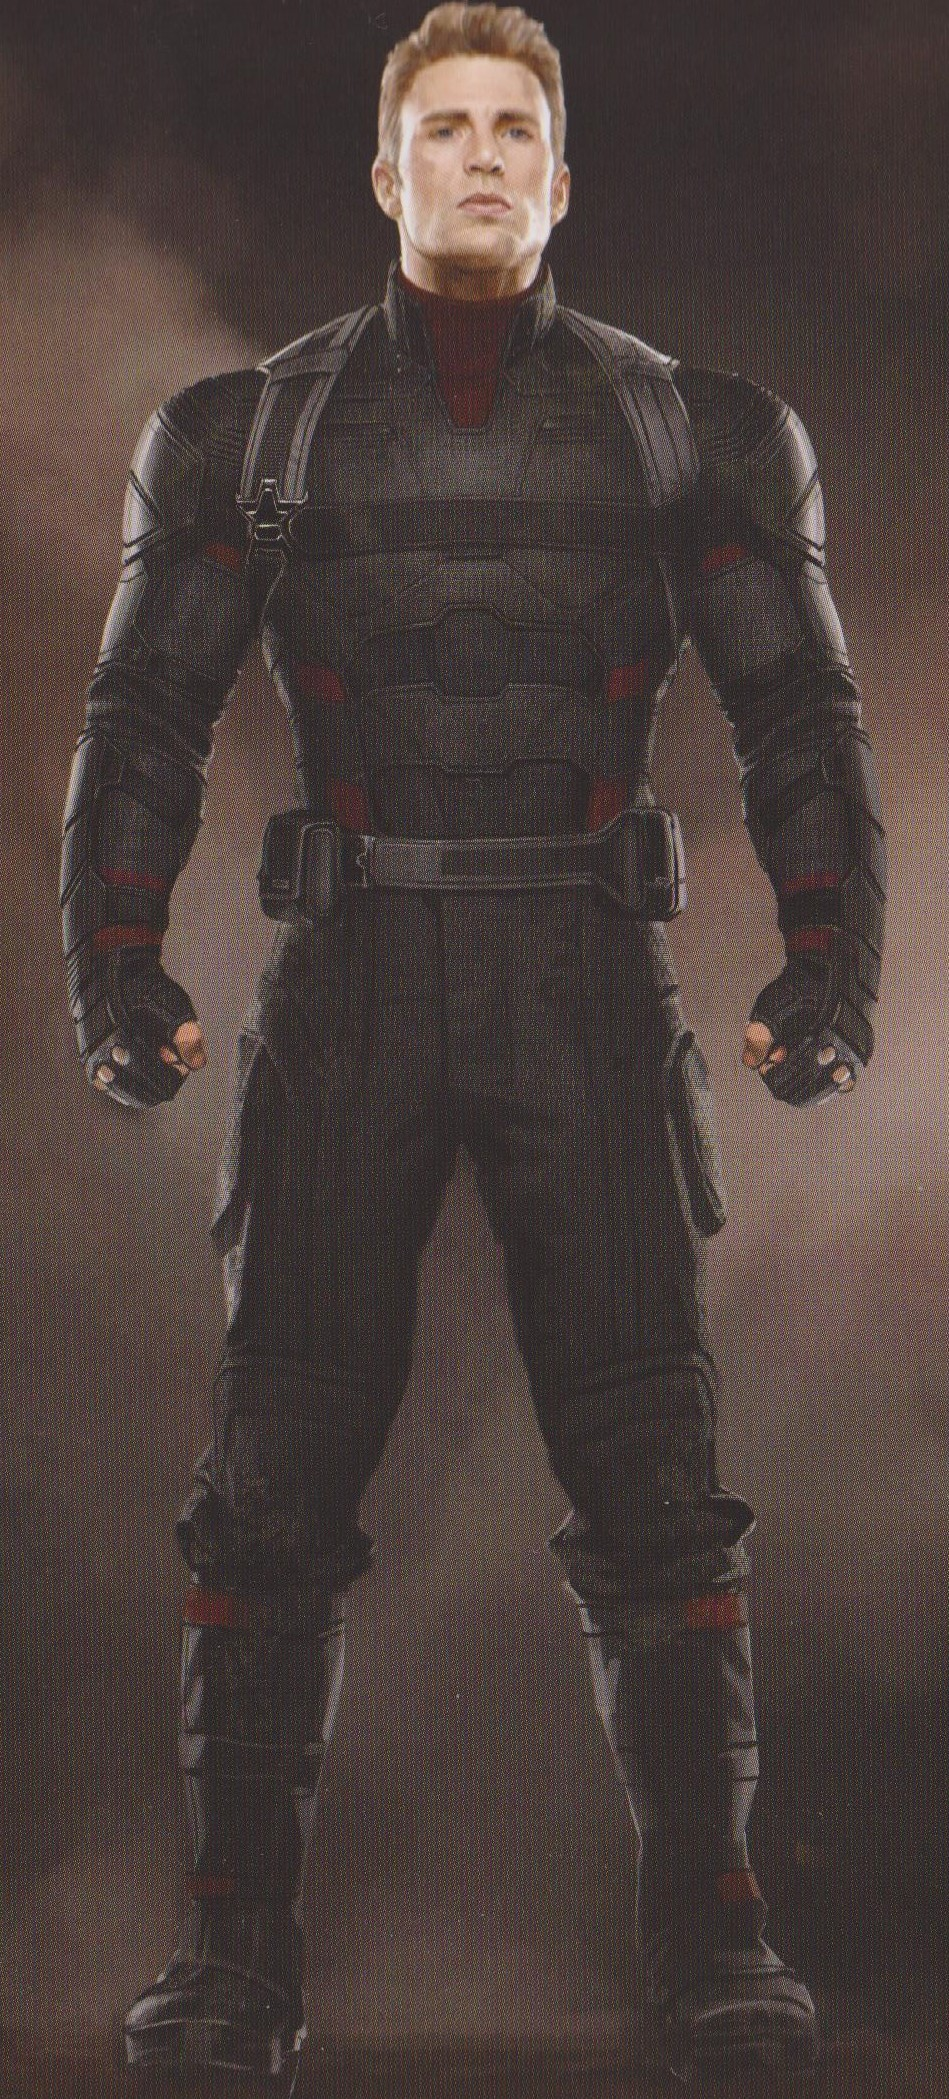 Avengers Infinity War Concept Art Shows Captain America In U S Agent And Super Solider Gear Geektyrant Fans were extremely excited to see that concept artwork for the latest marvel cinematic universe film 'captain marvel,' starring brie larson, was released online. avengers infinity war concept art